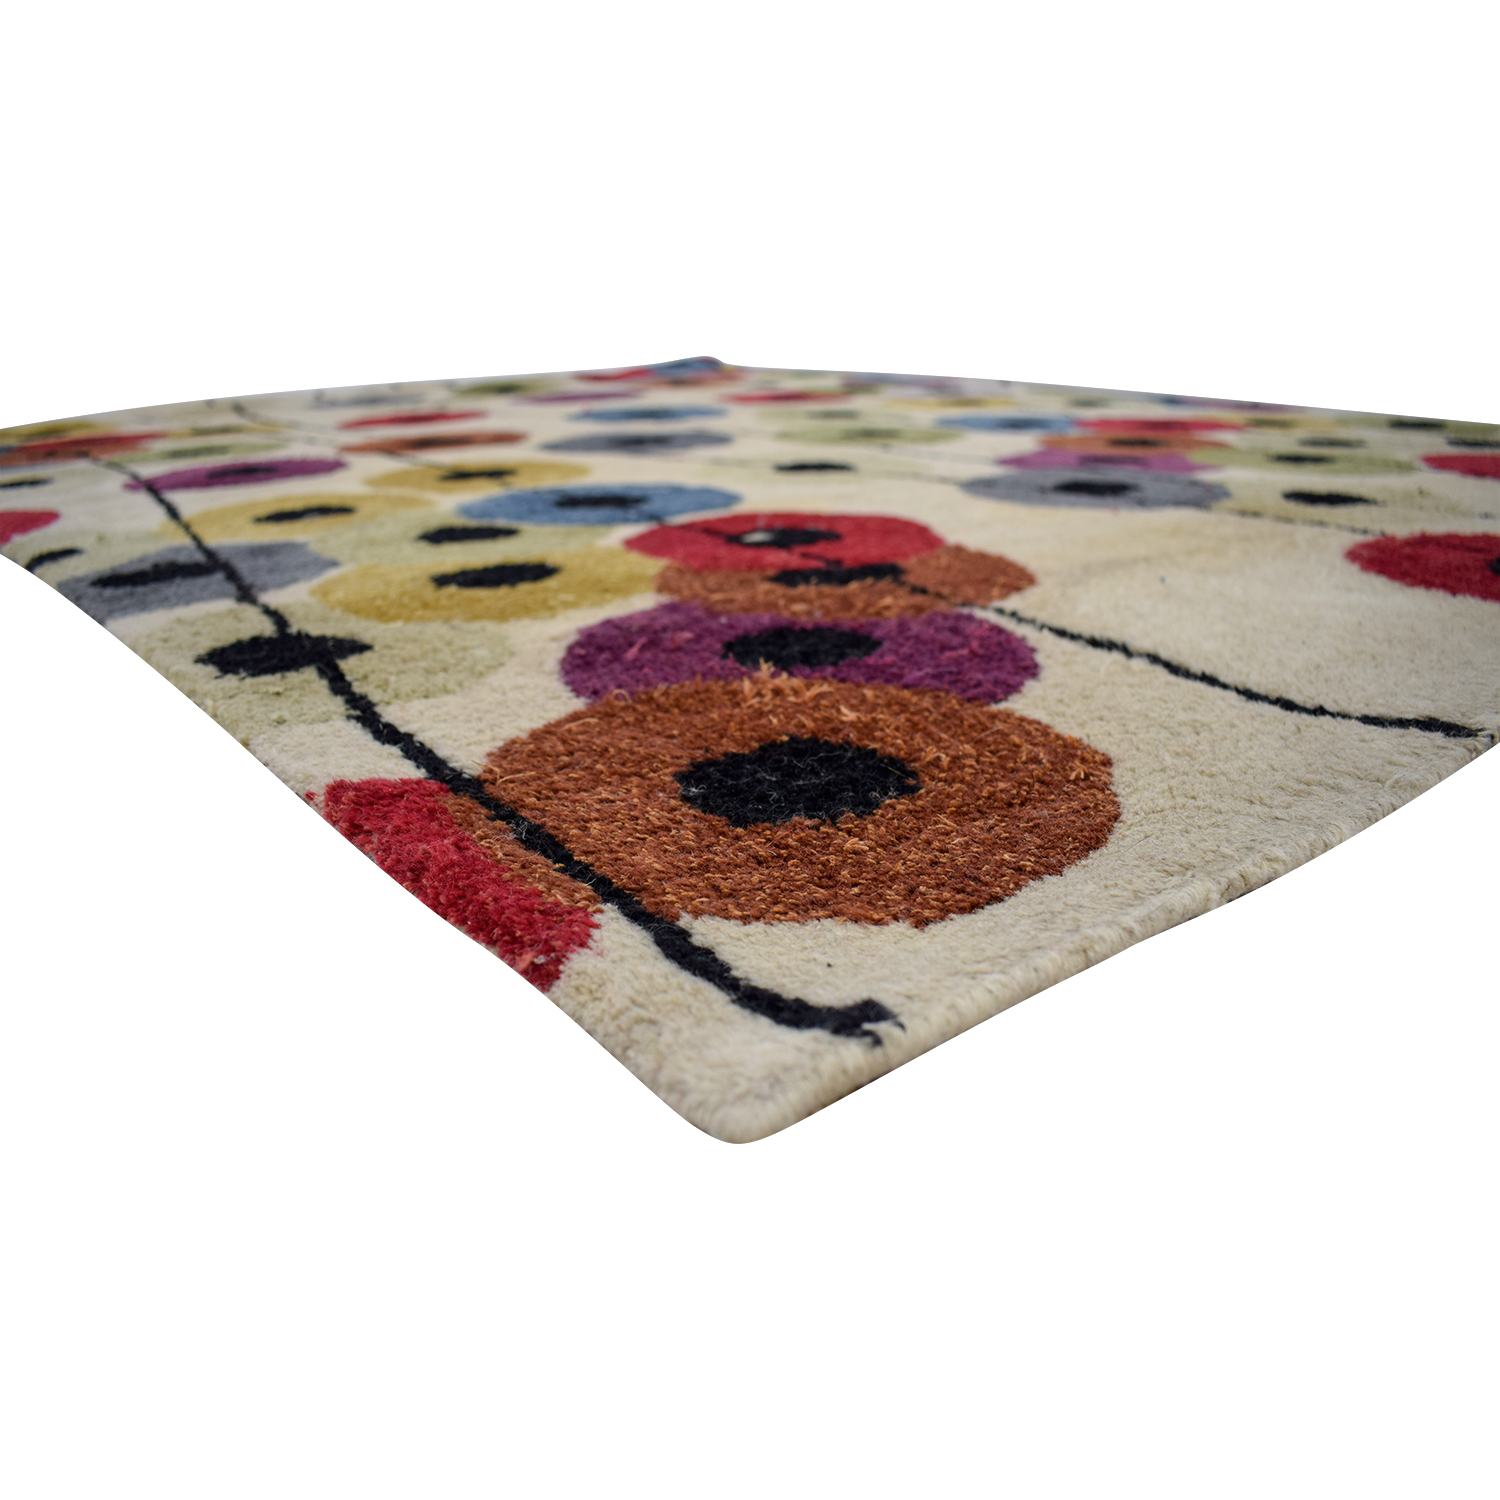 Crate & Barrel Crate & Barrel Conway Multi-Colored Rug MULTI COLORED